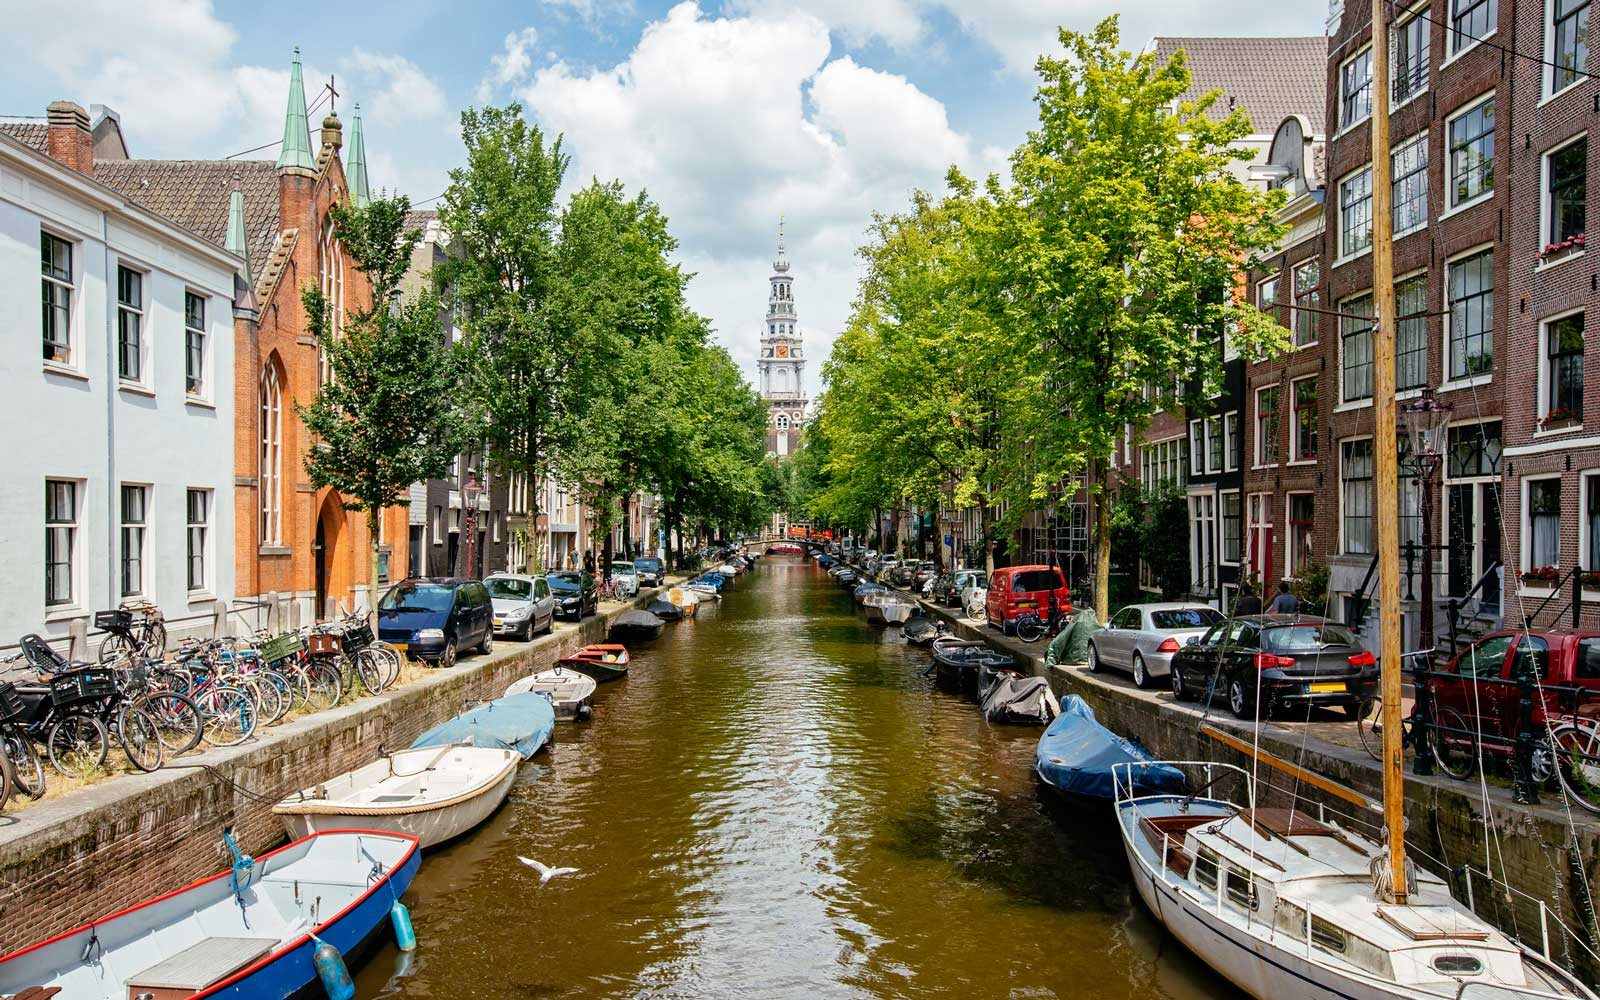 Church and boats moored along the canal in Amsterdam, Holland